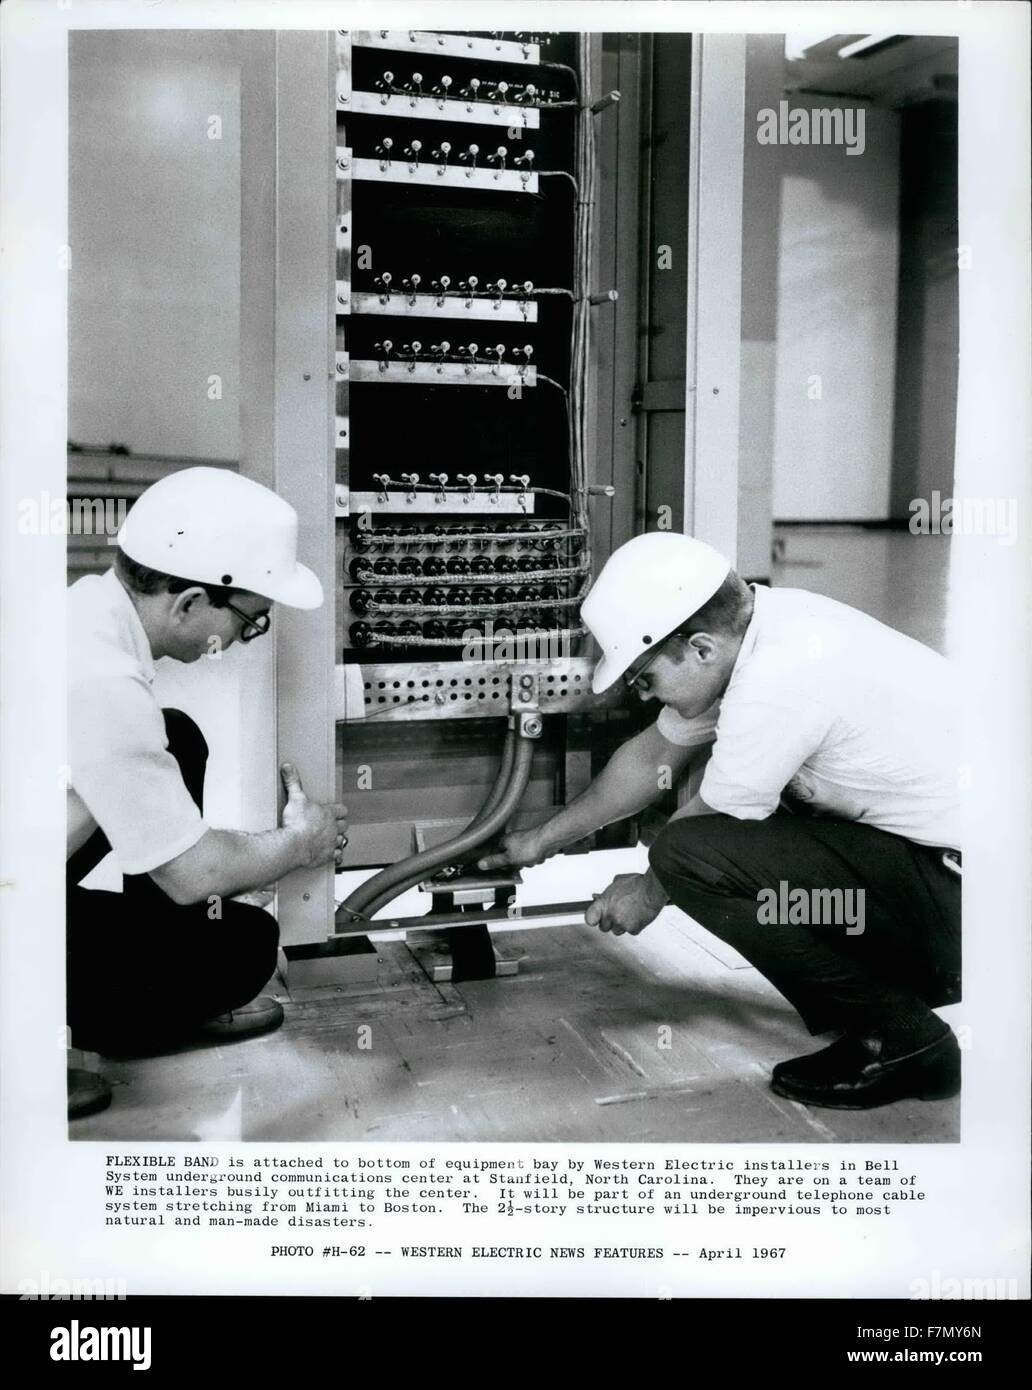 1972 - Flexbile Band is attached to bottom of equipment bay by Western Electric Installers in Bell System underground - Stock Image